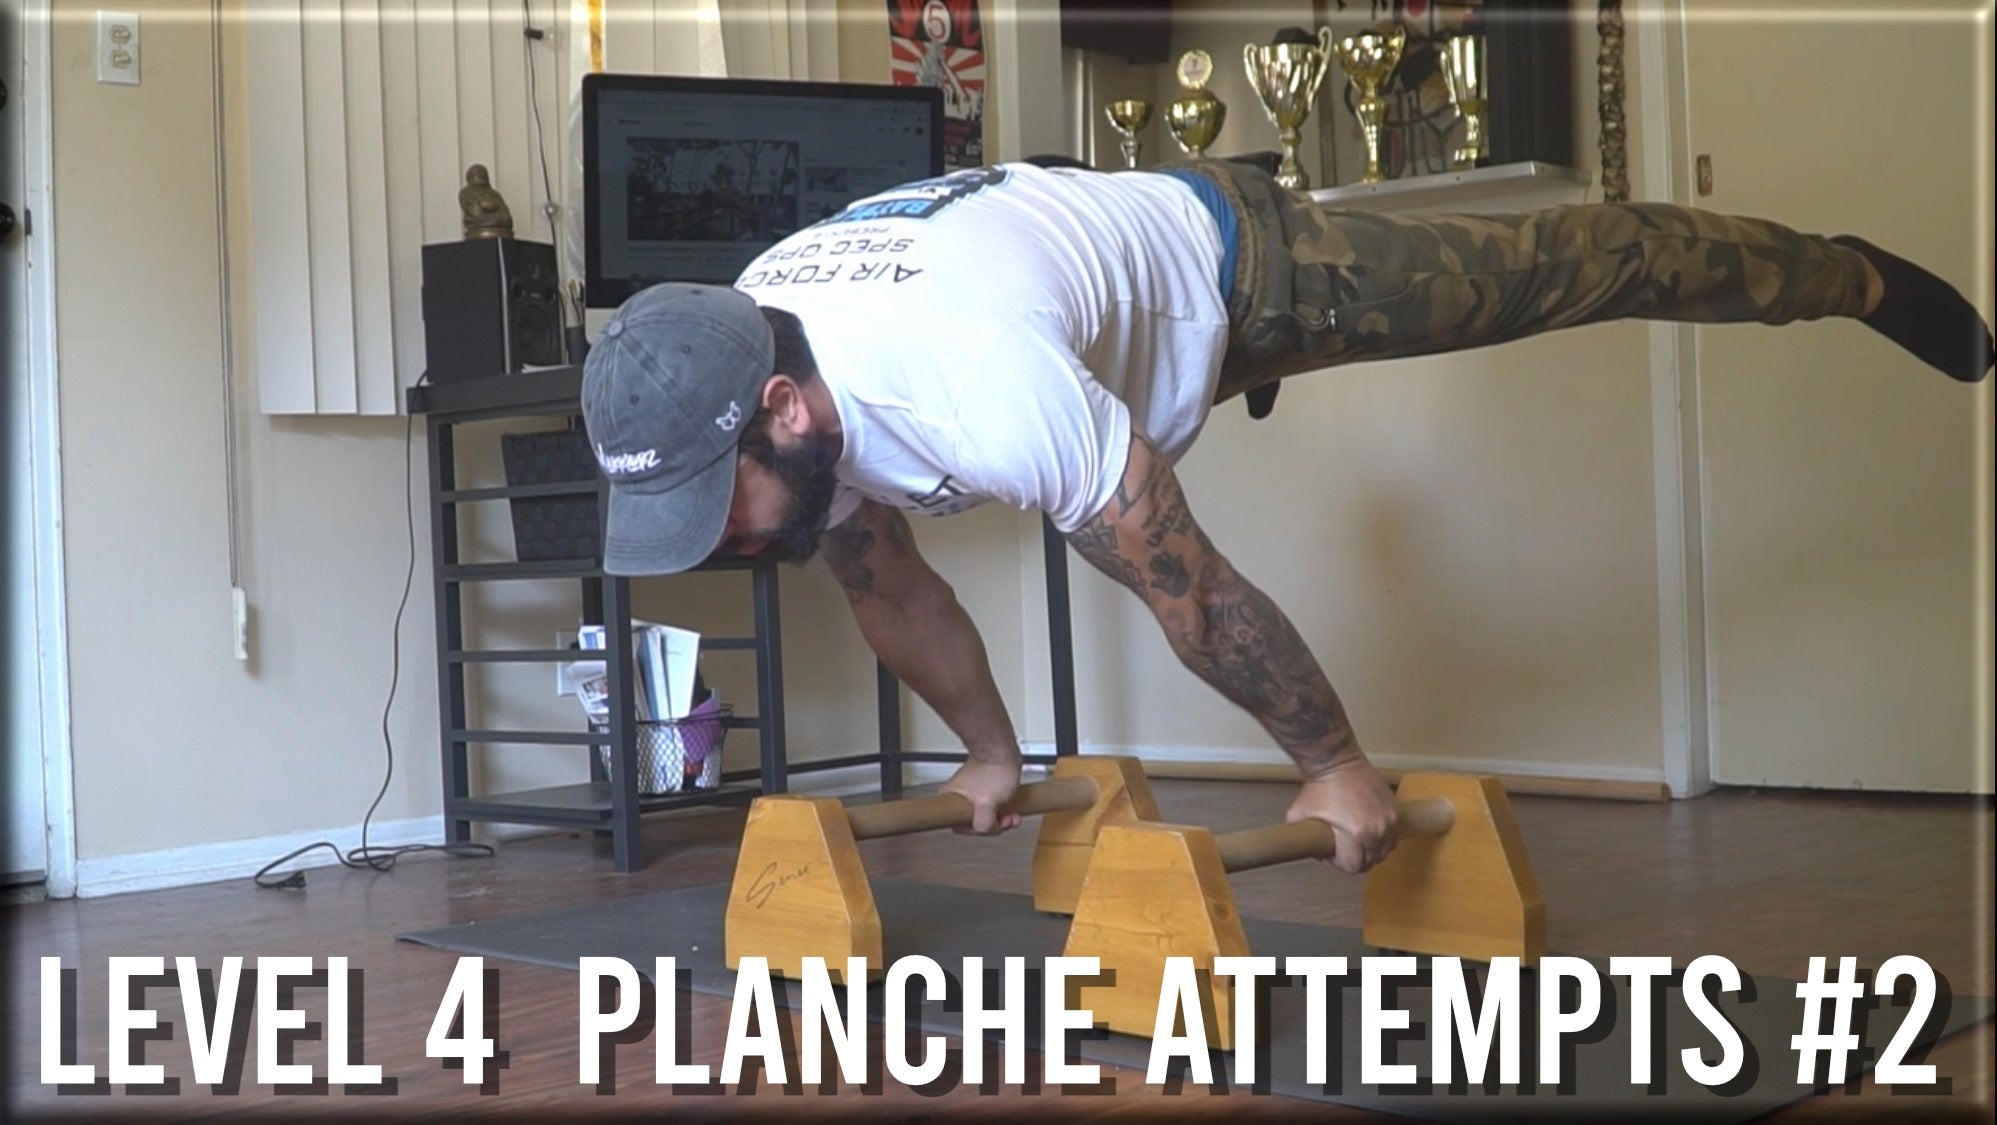 Level 4 Planche Attempts #2